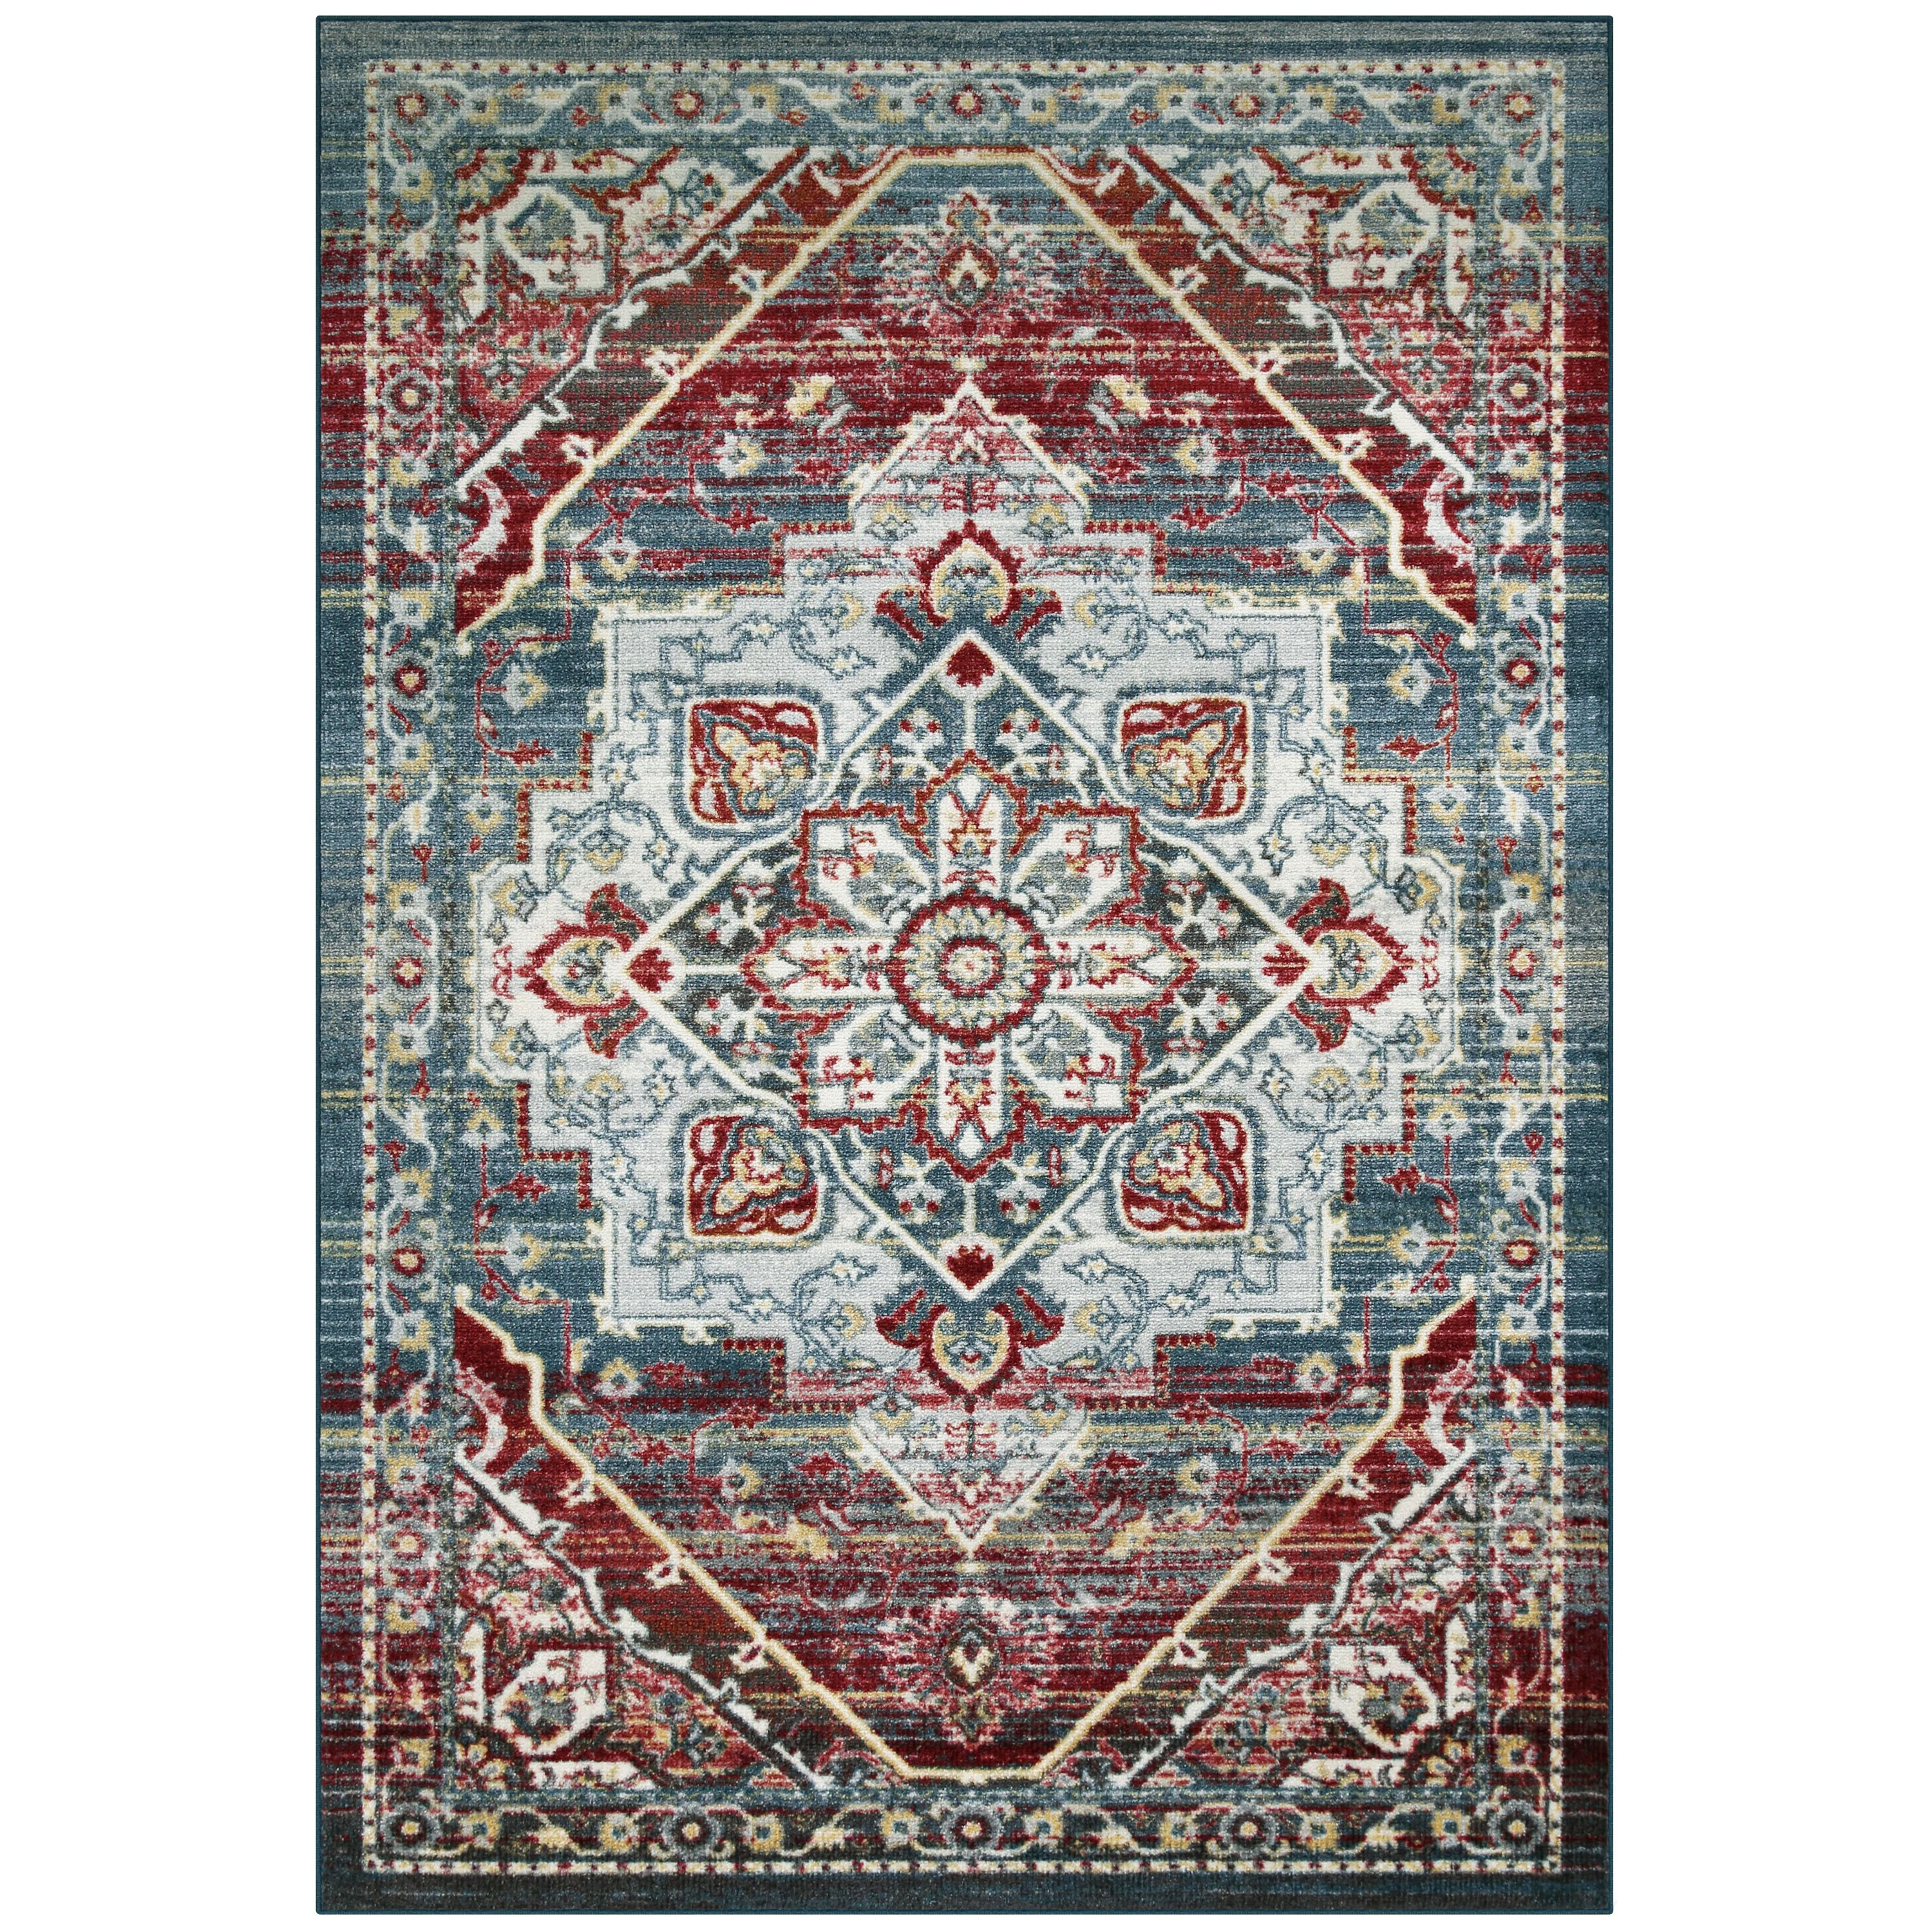 Better Homes and Gardens Blooming Bendigo Multi-Color Area Rug or Runner